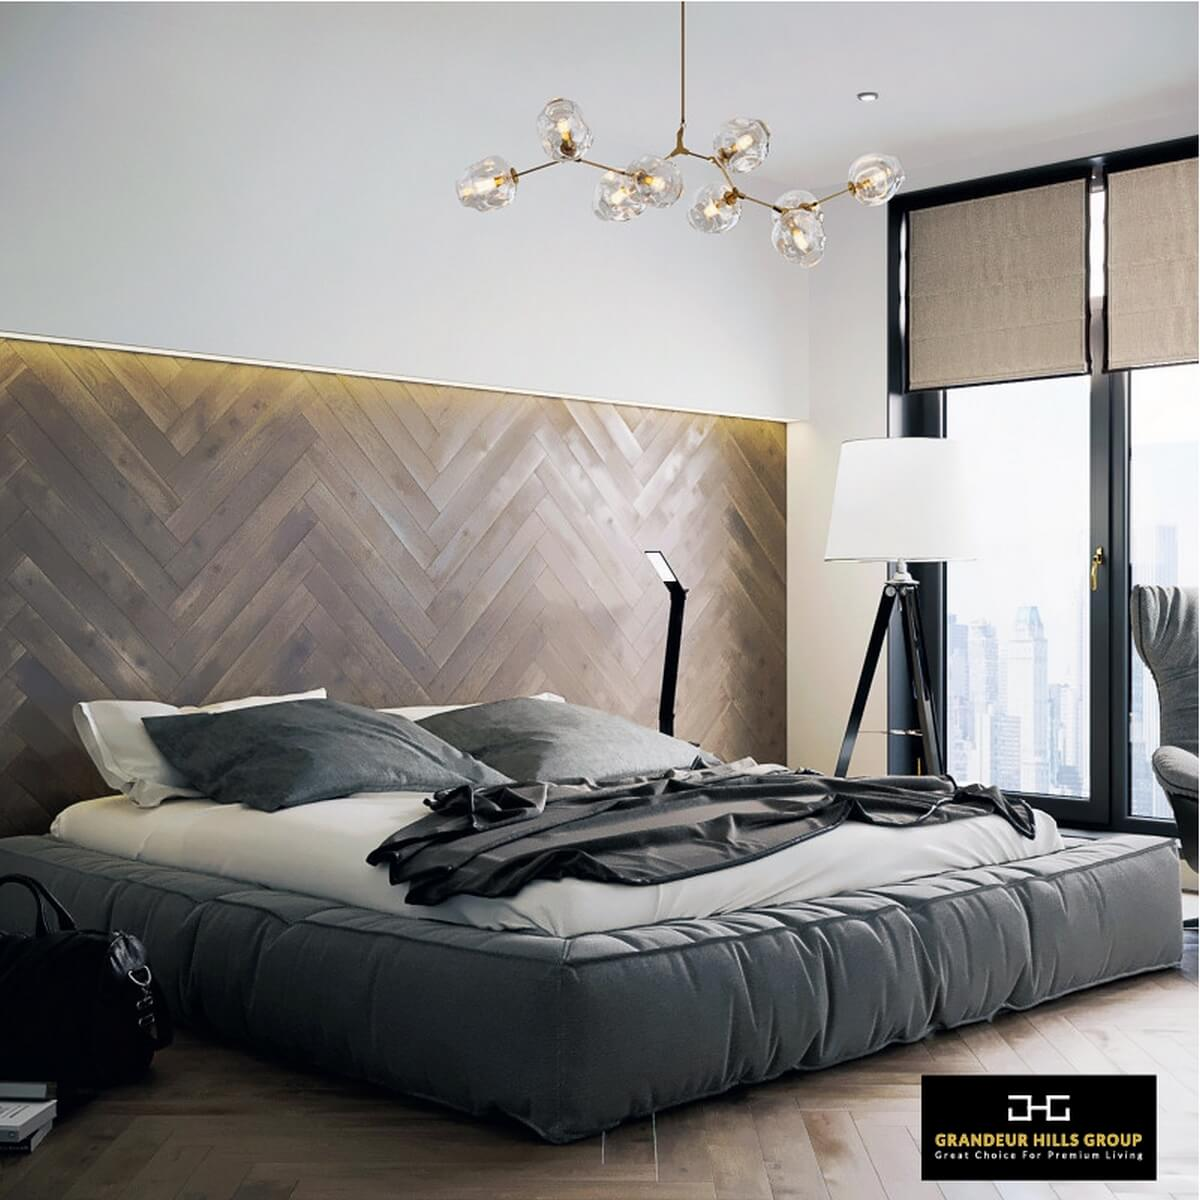 What things would make your sleep and relaxation ideal? Of course, spaciousness, light, fresh clean air, high-quality bedding and functional upholstered furniture can give you a bedroom that fully meets your wishes, tastes and needs. You can see it all in this fully functional, stylish and beautiful bedroom in the photo. Want to make your bedroom fully functional, stylish and attractive too? Then tackle the problem right now together with our best interior designers!